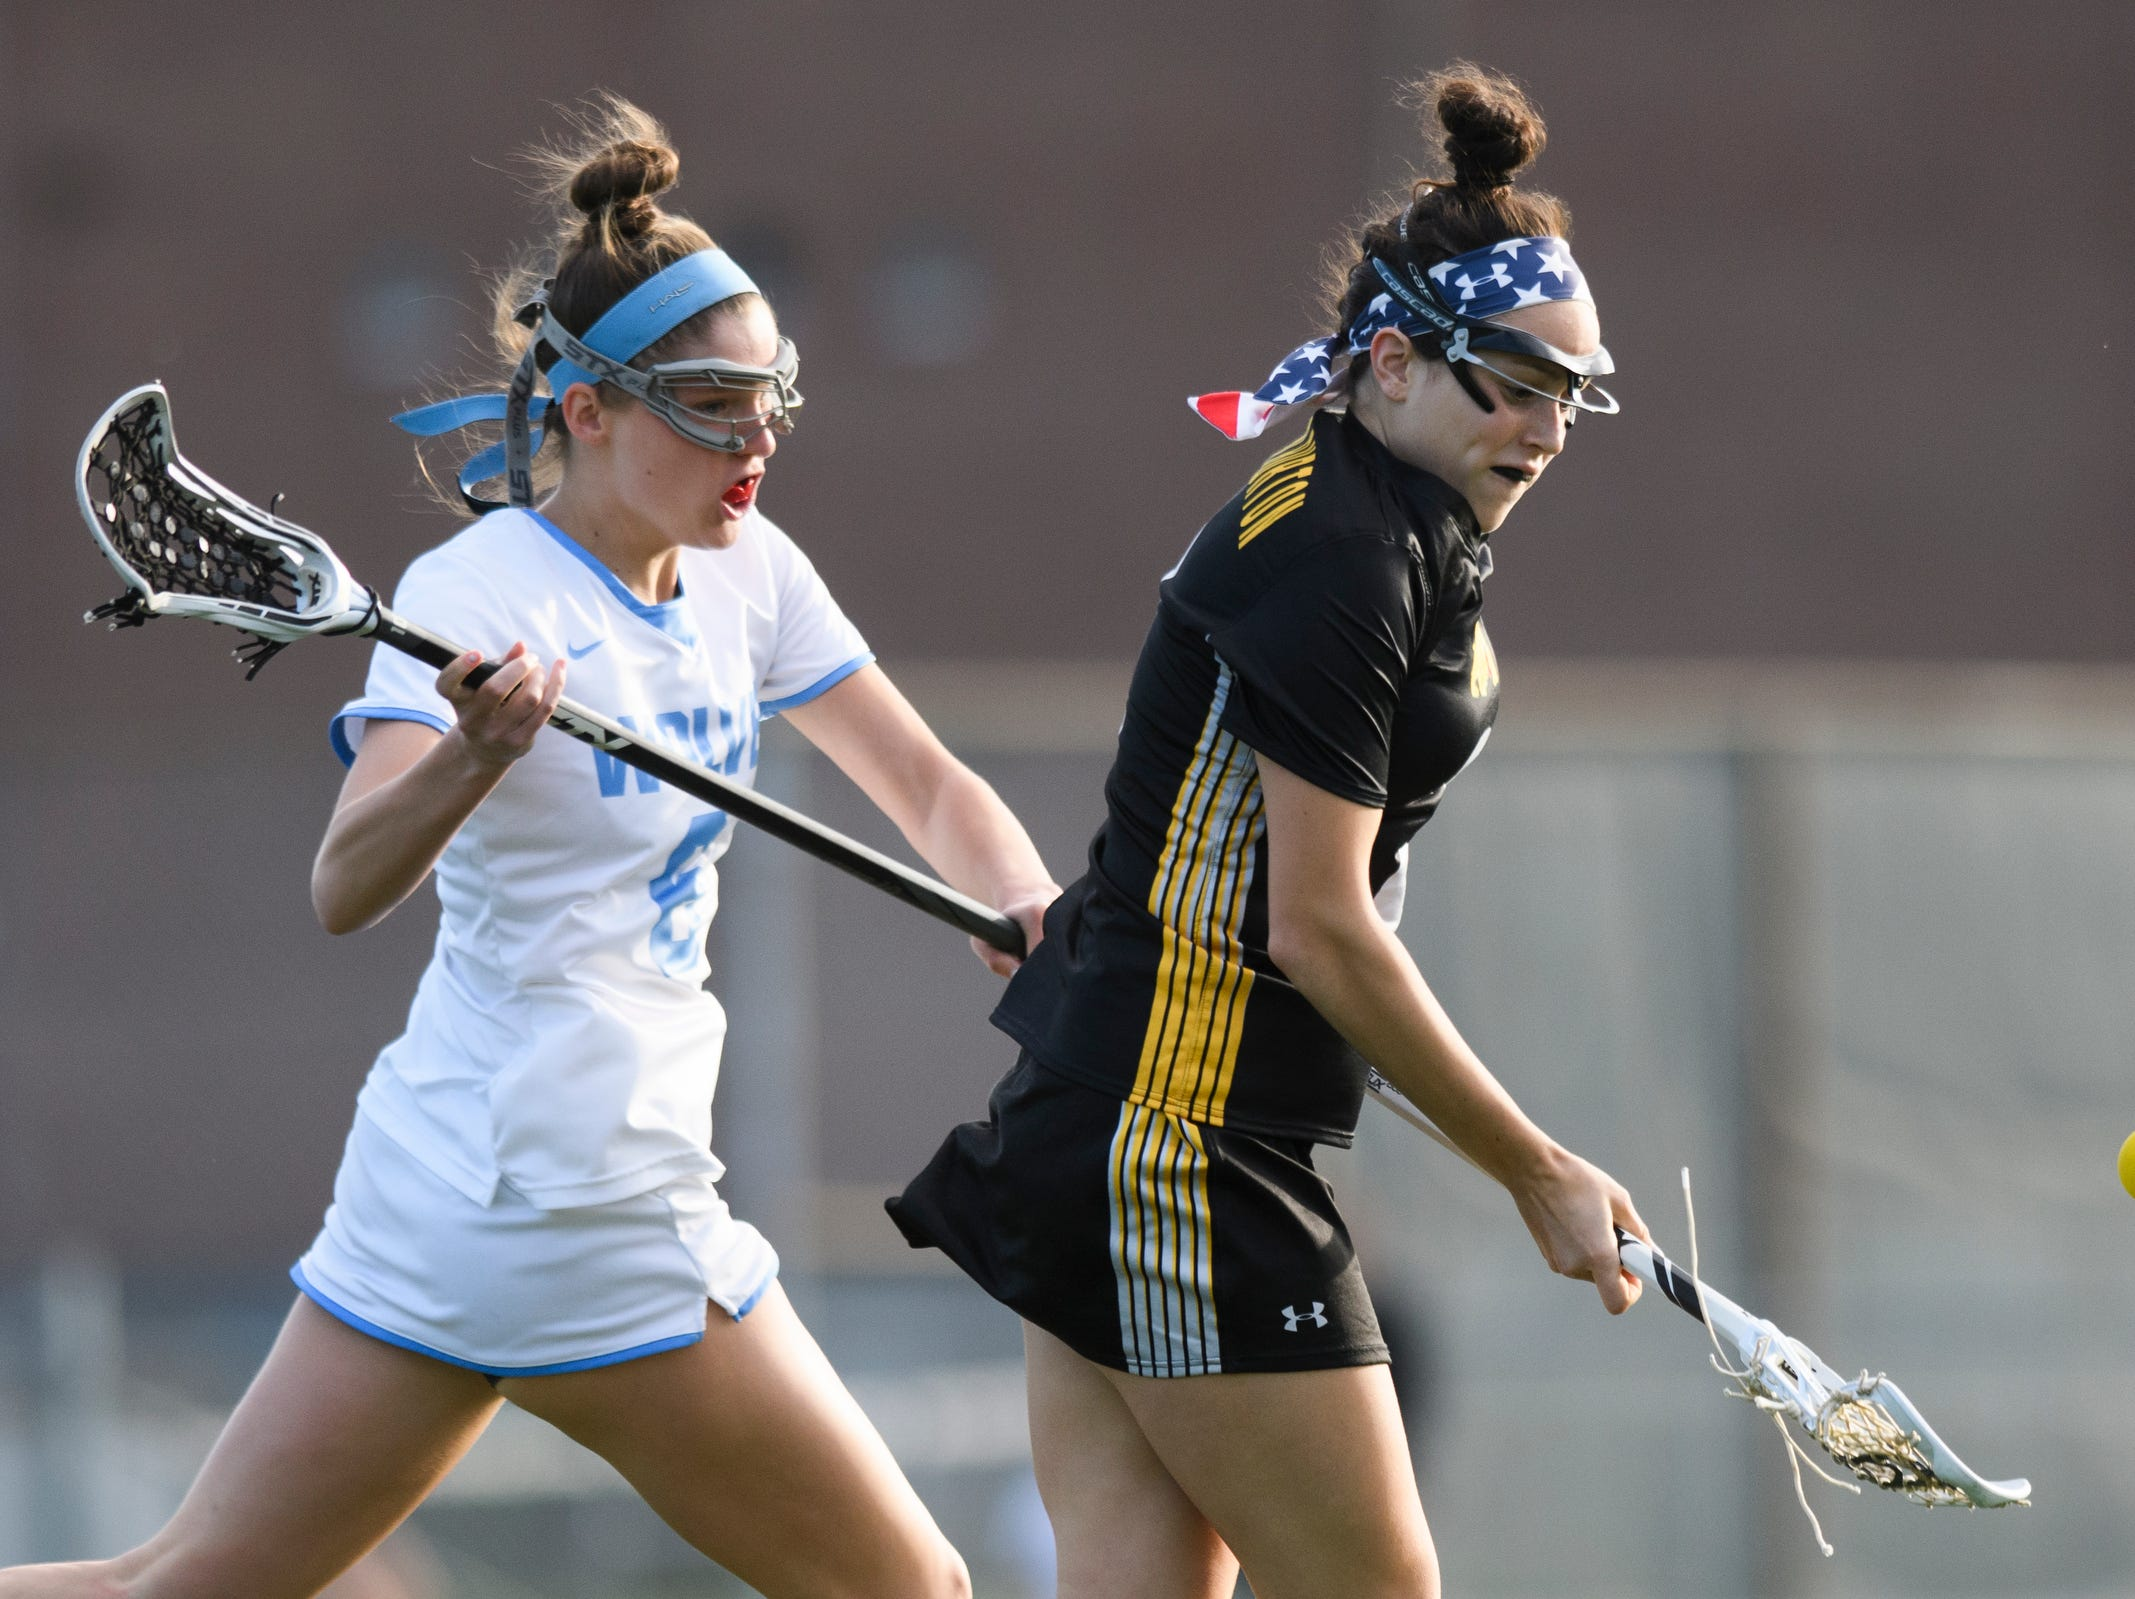 Burr and Burton's Fiona McMahon (2) plays the ball as she runs past South Burlington's Kathryn DeMag (6) during the high school girls lacrosse game between Burr and Burton Bulldogs and the South Burlington Wolves at Munson Field on Monday afternoon May 6, 2019 in South Burlington, Vermont.